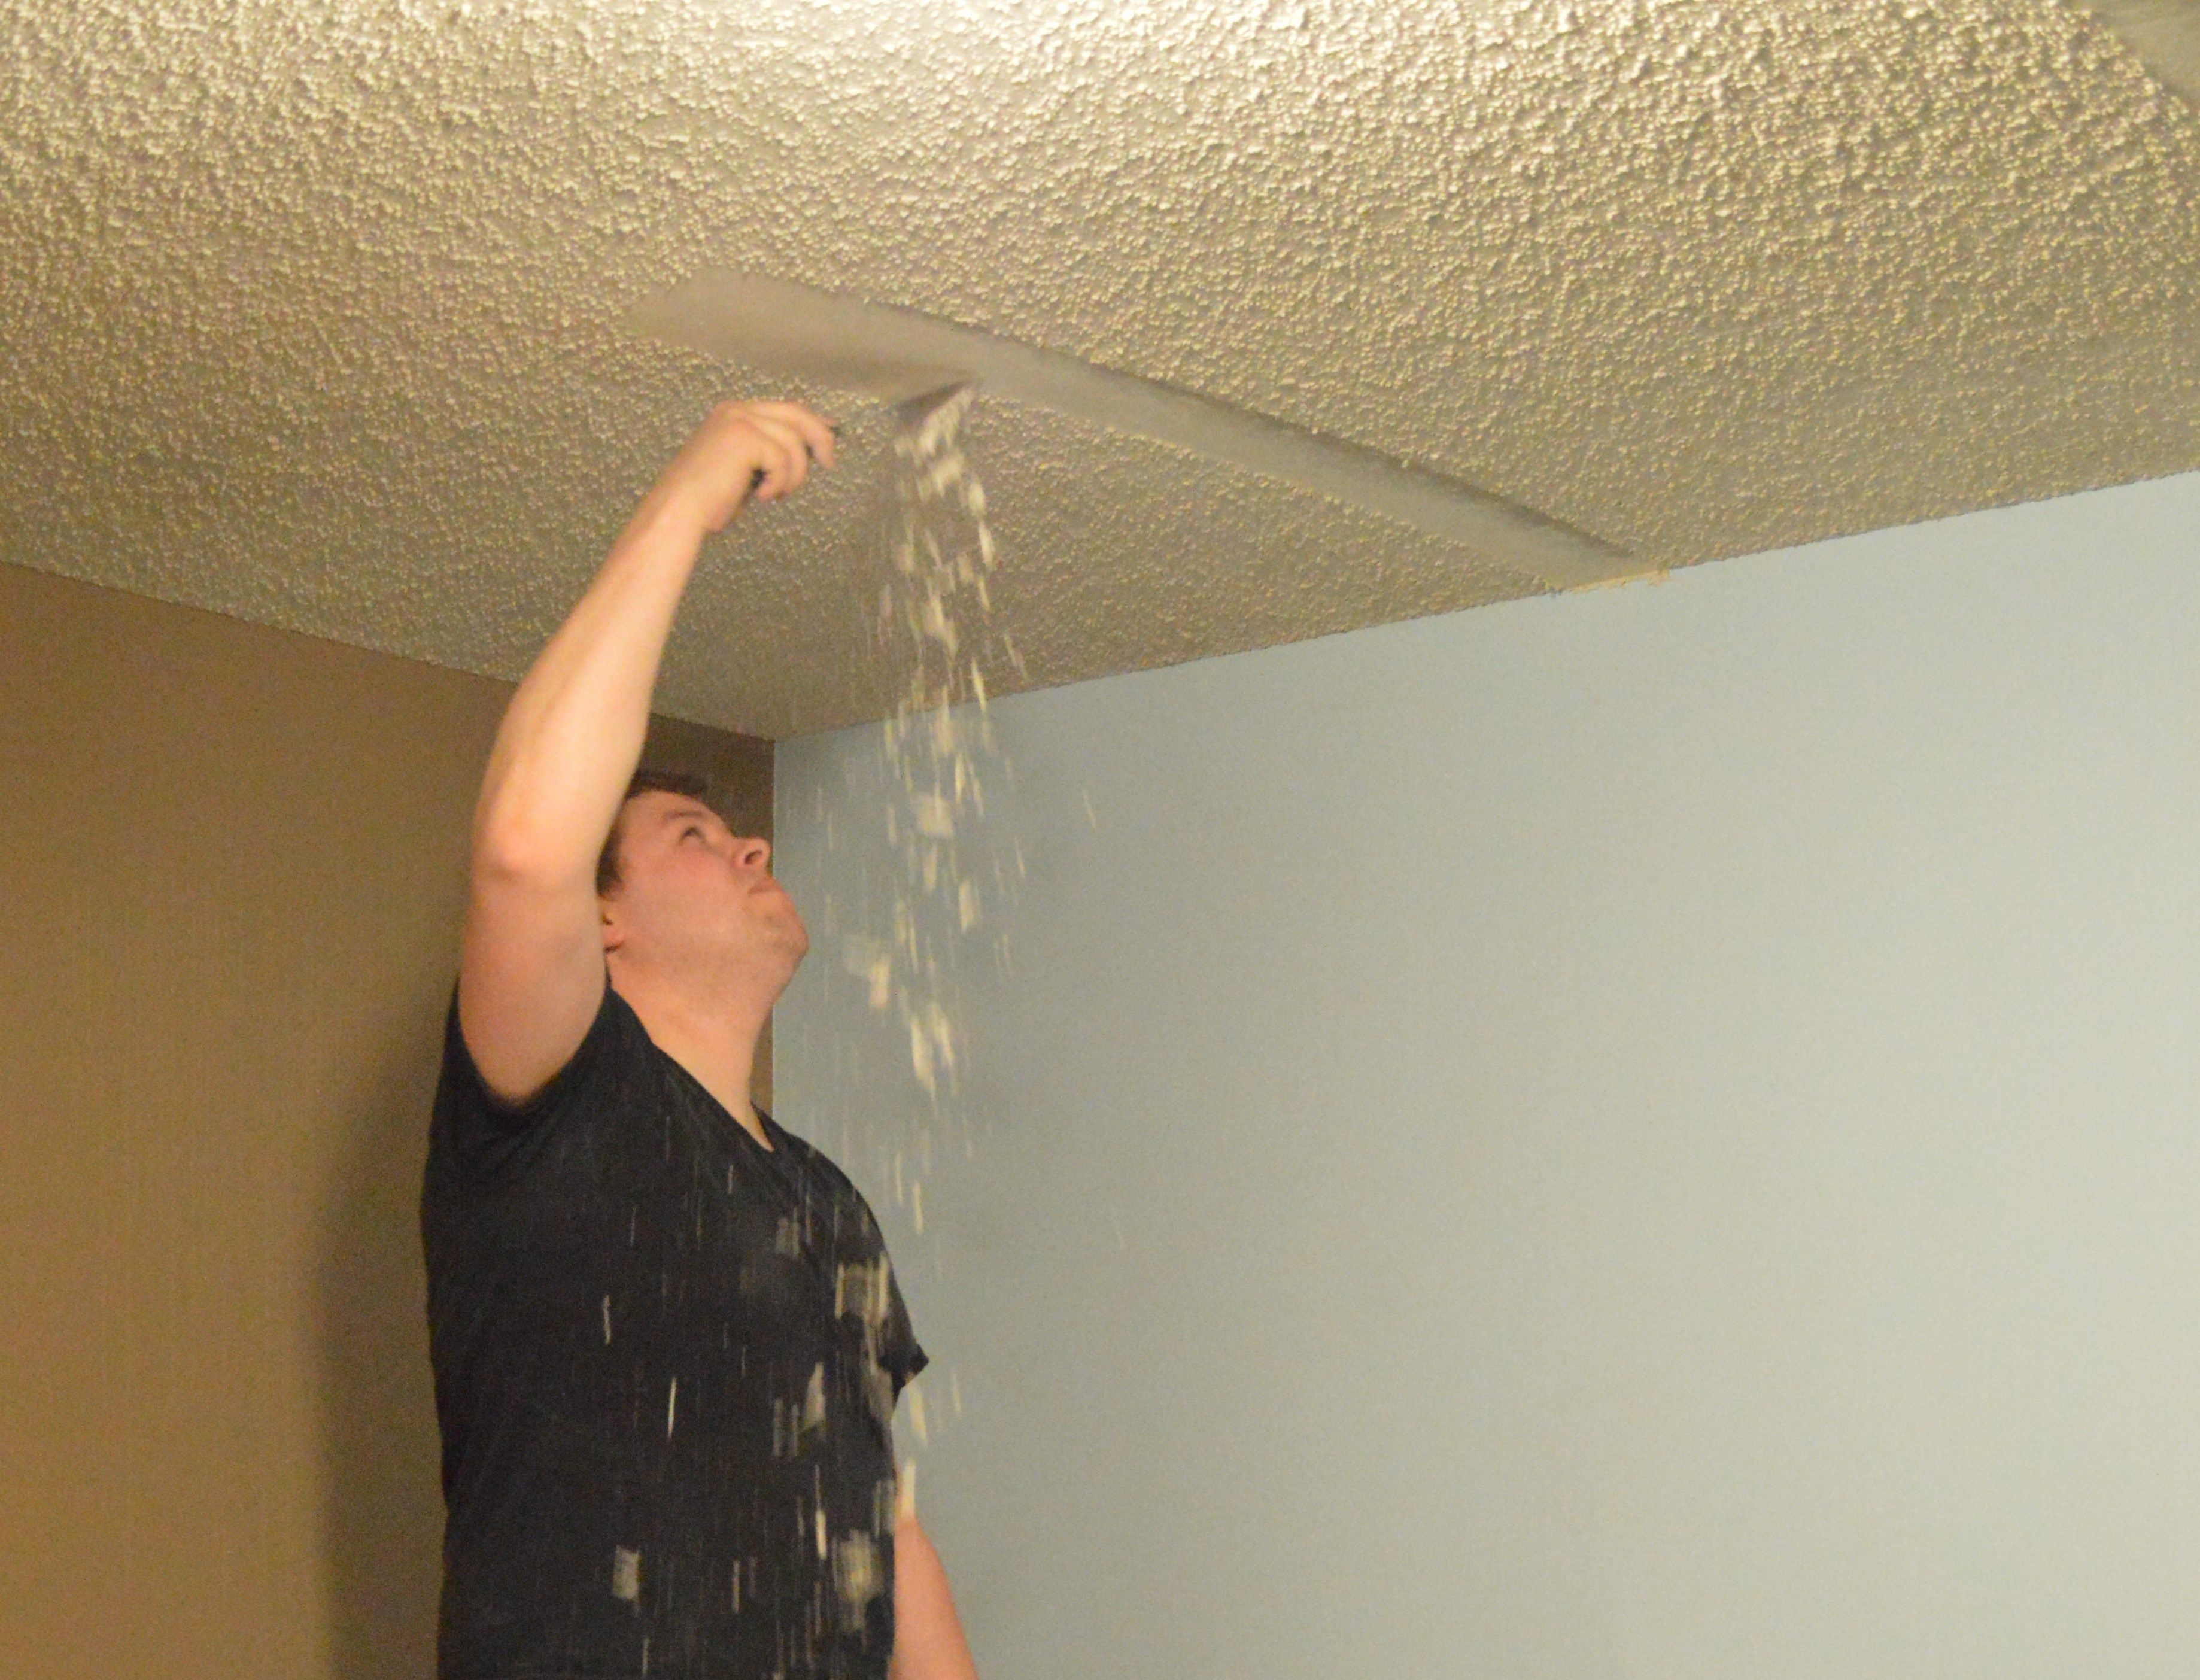 The Simple Trick To Remove Popcorn Ceilings